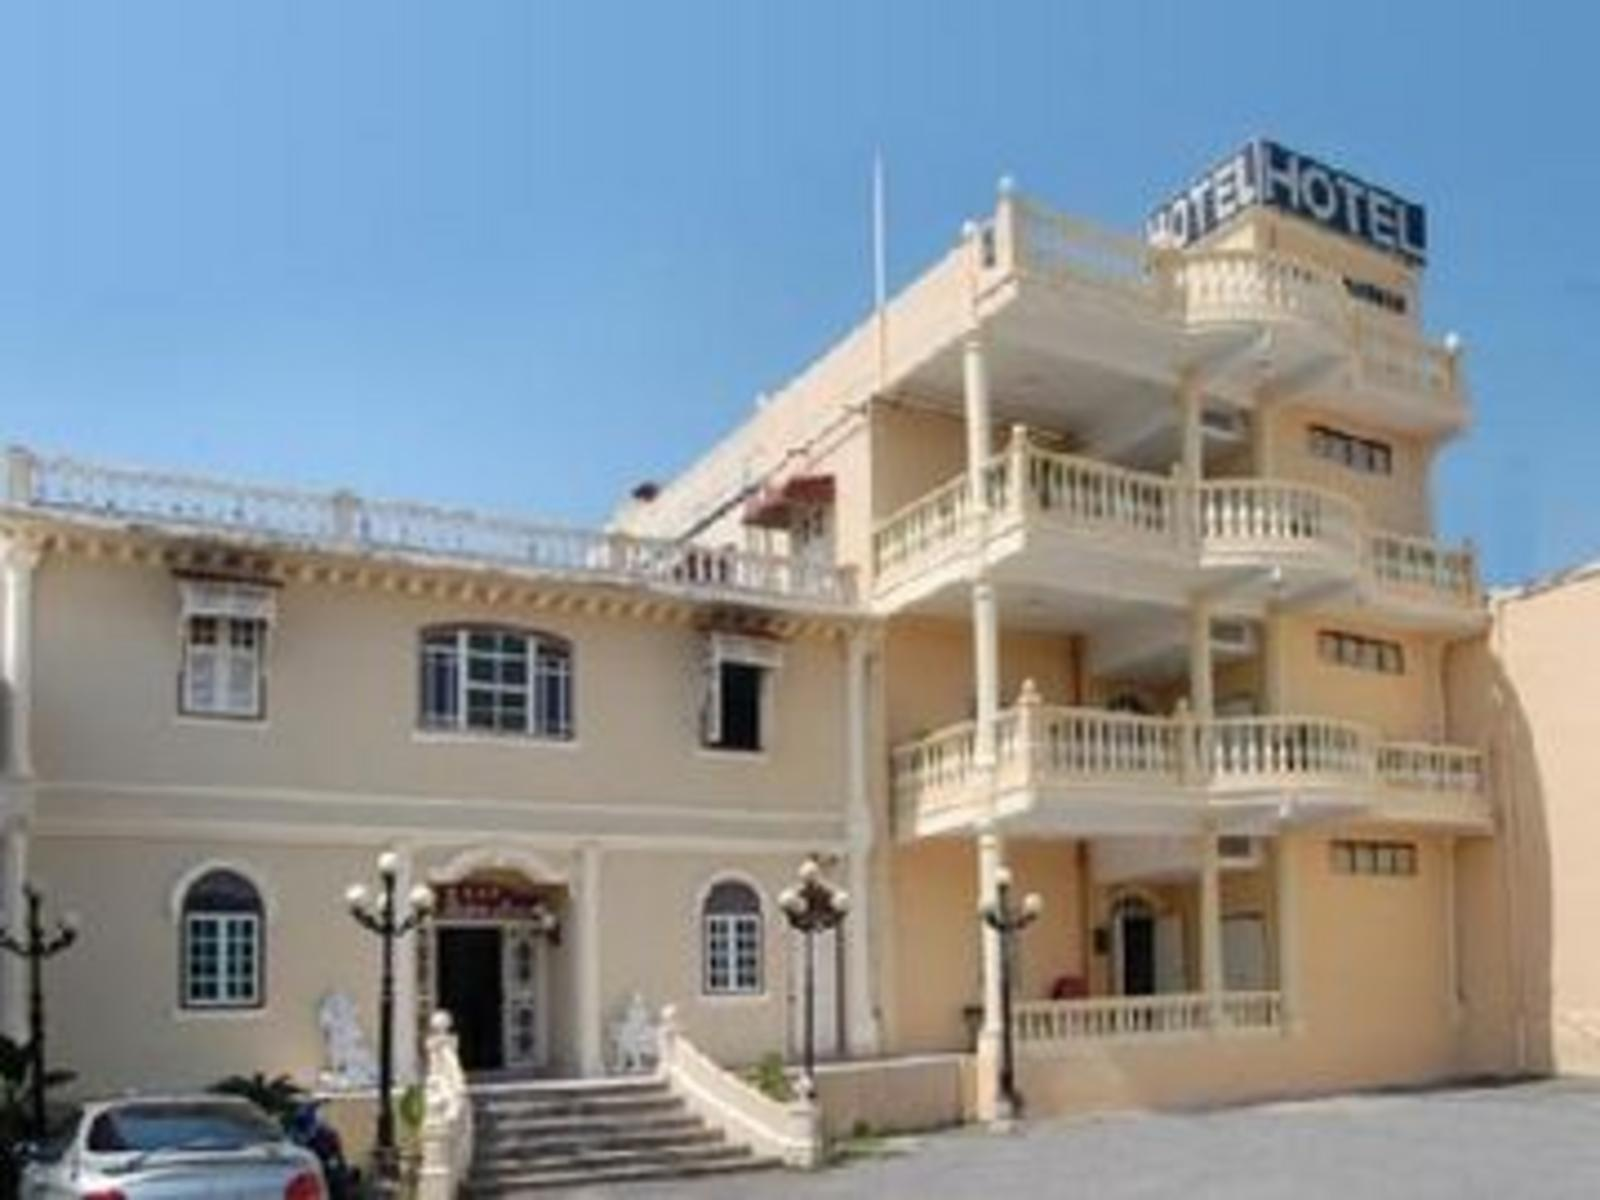 The Baba House Hotel